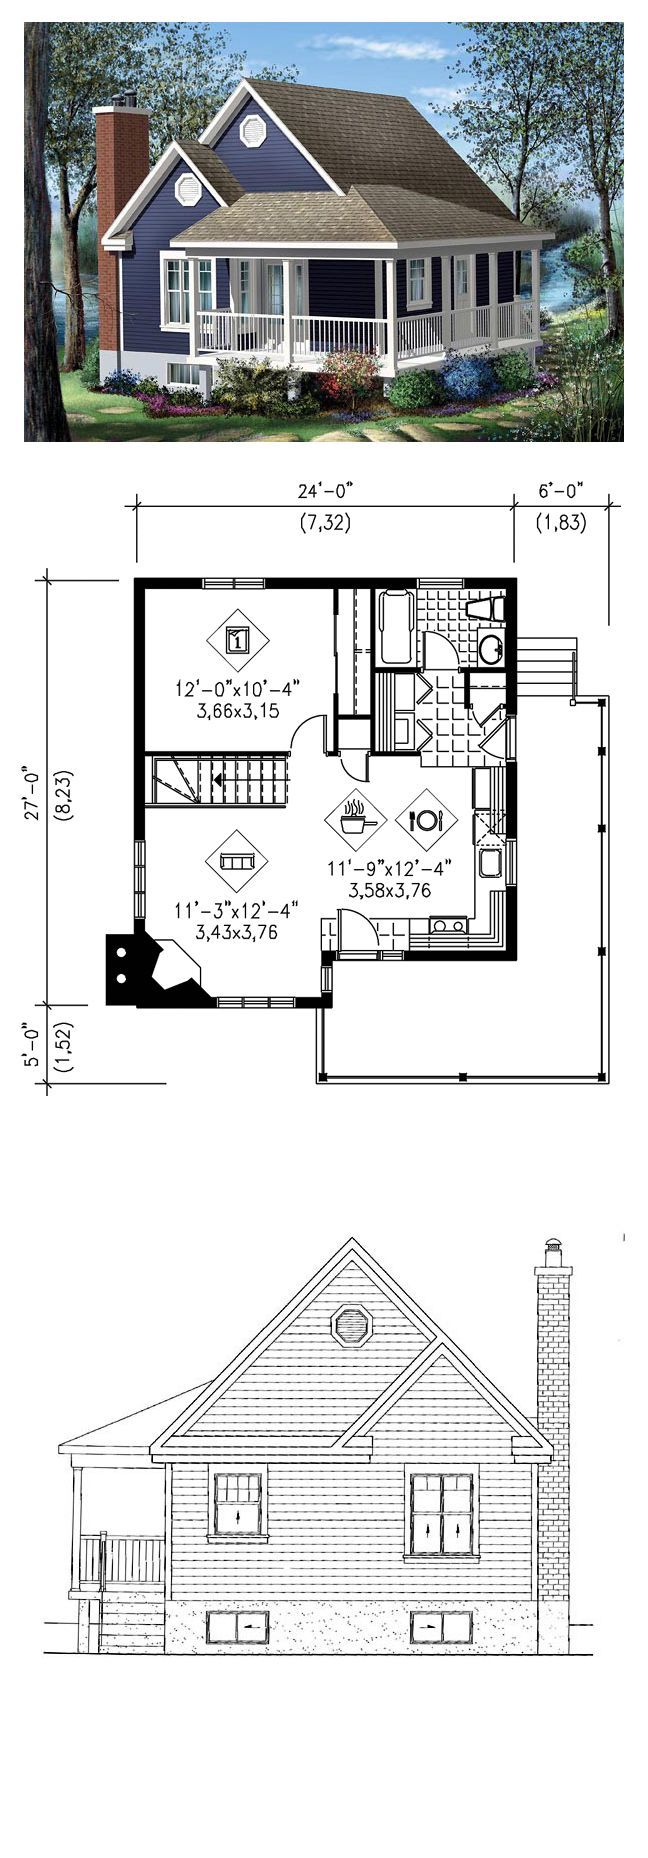 Country Living House Plans | Narrow Lot House Plan 49824 | Total Living  Area: 613